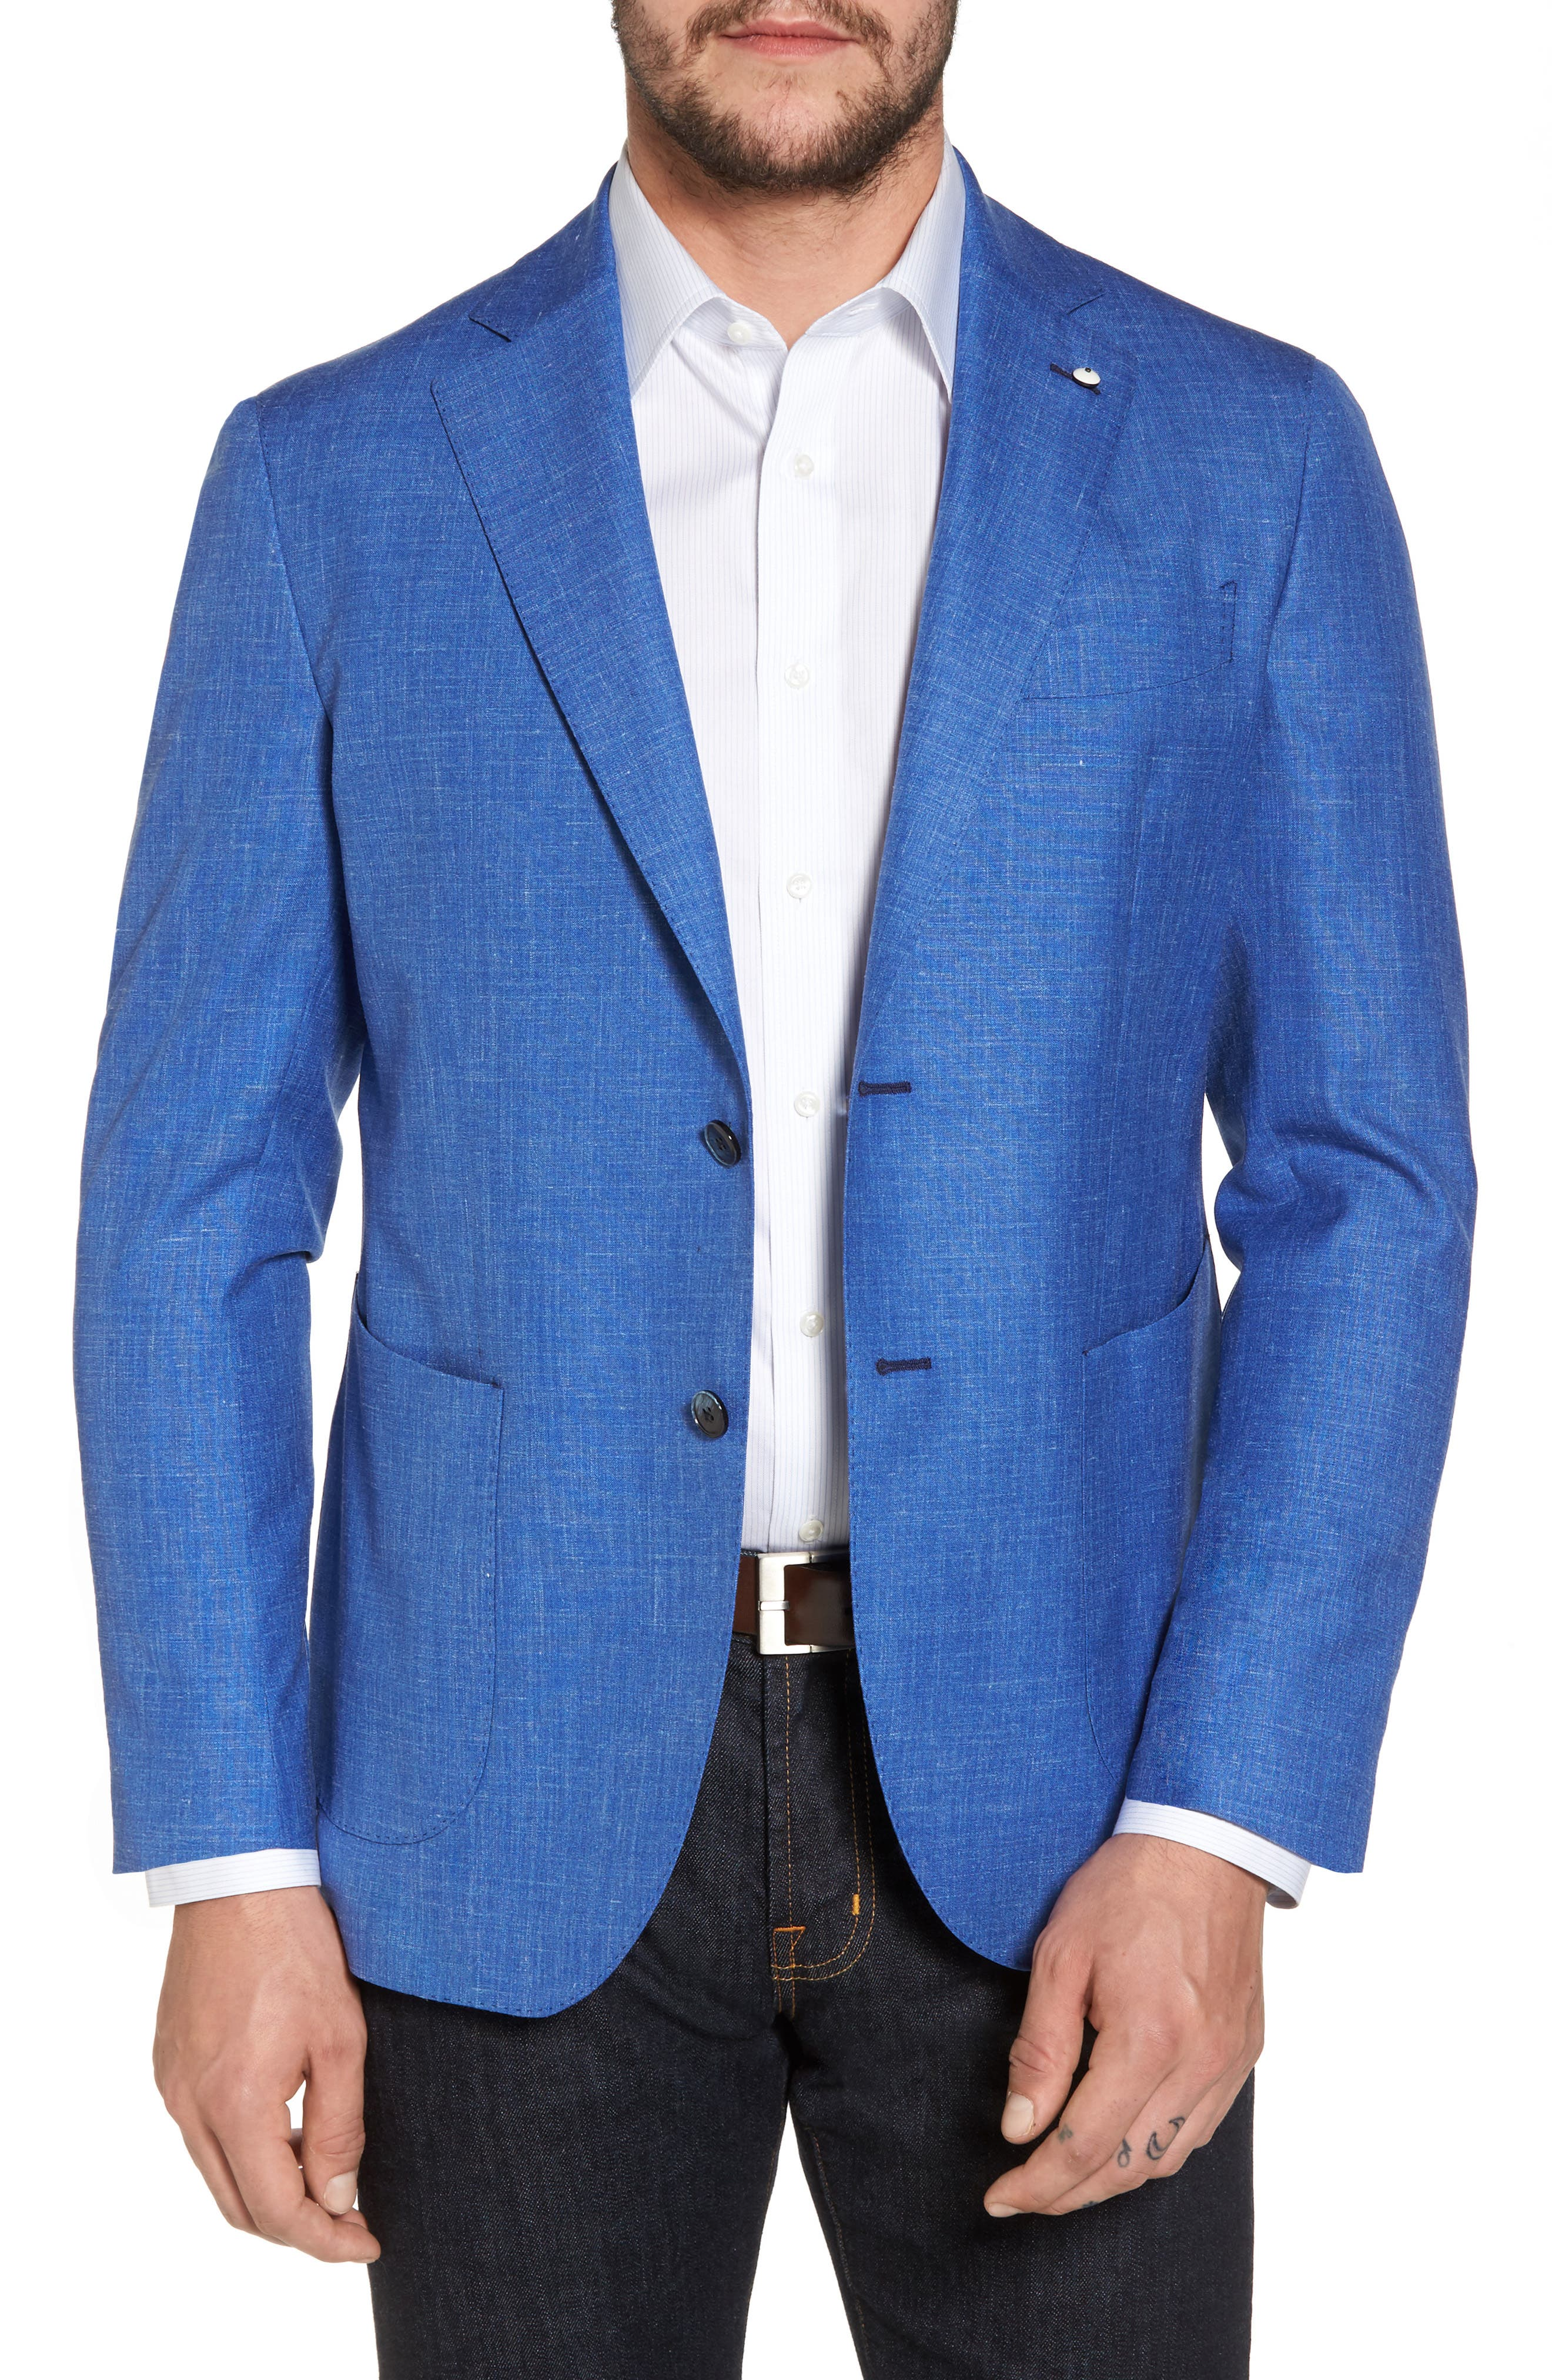 Classic Fit Wool Blend Blazer,                             Main thumbnail 1, color,                             410